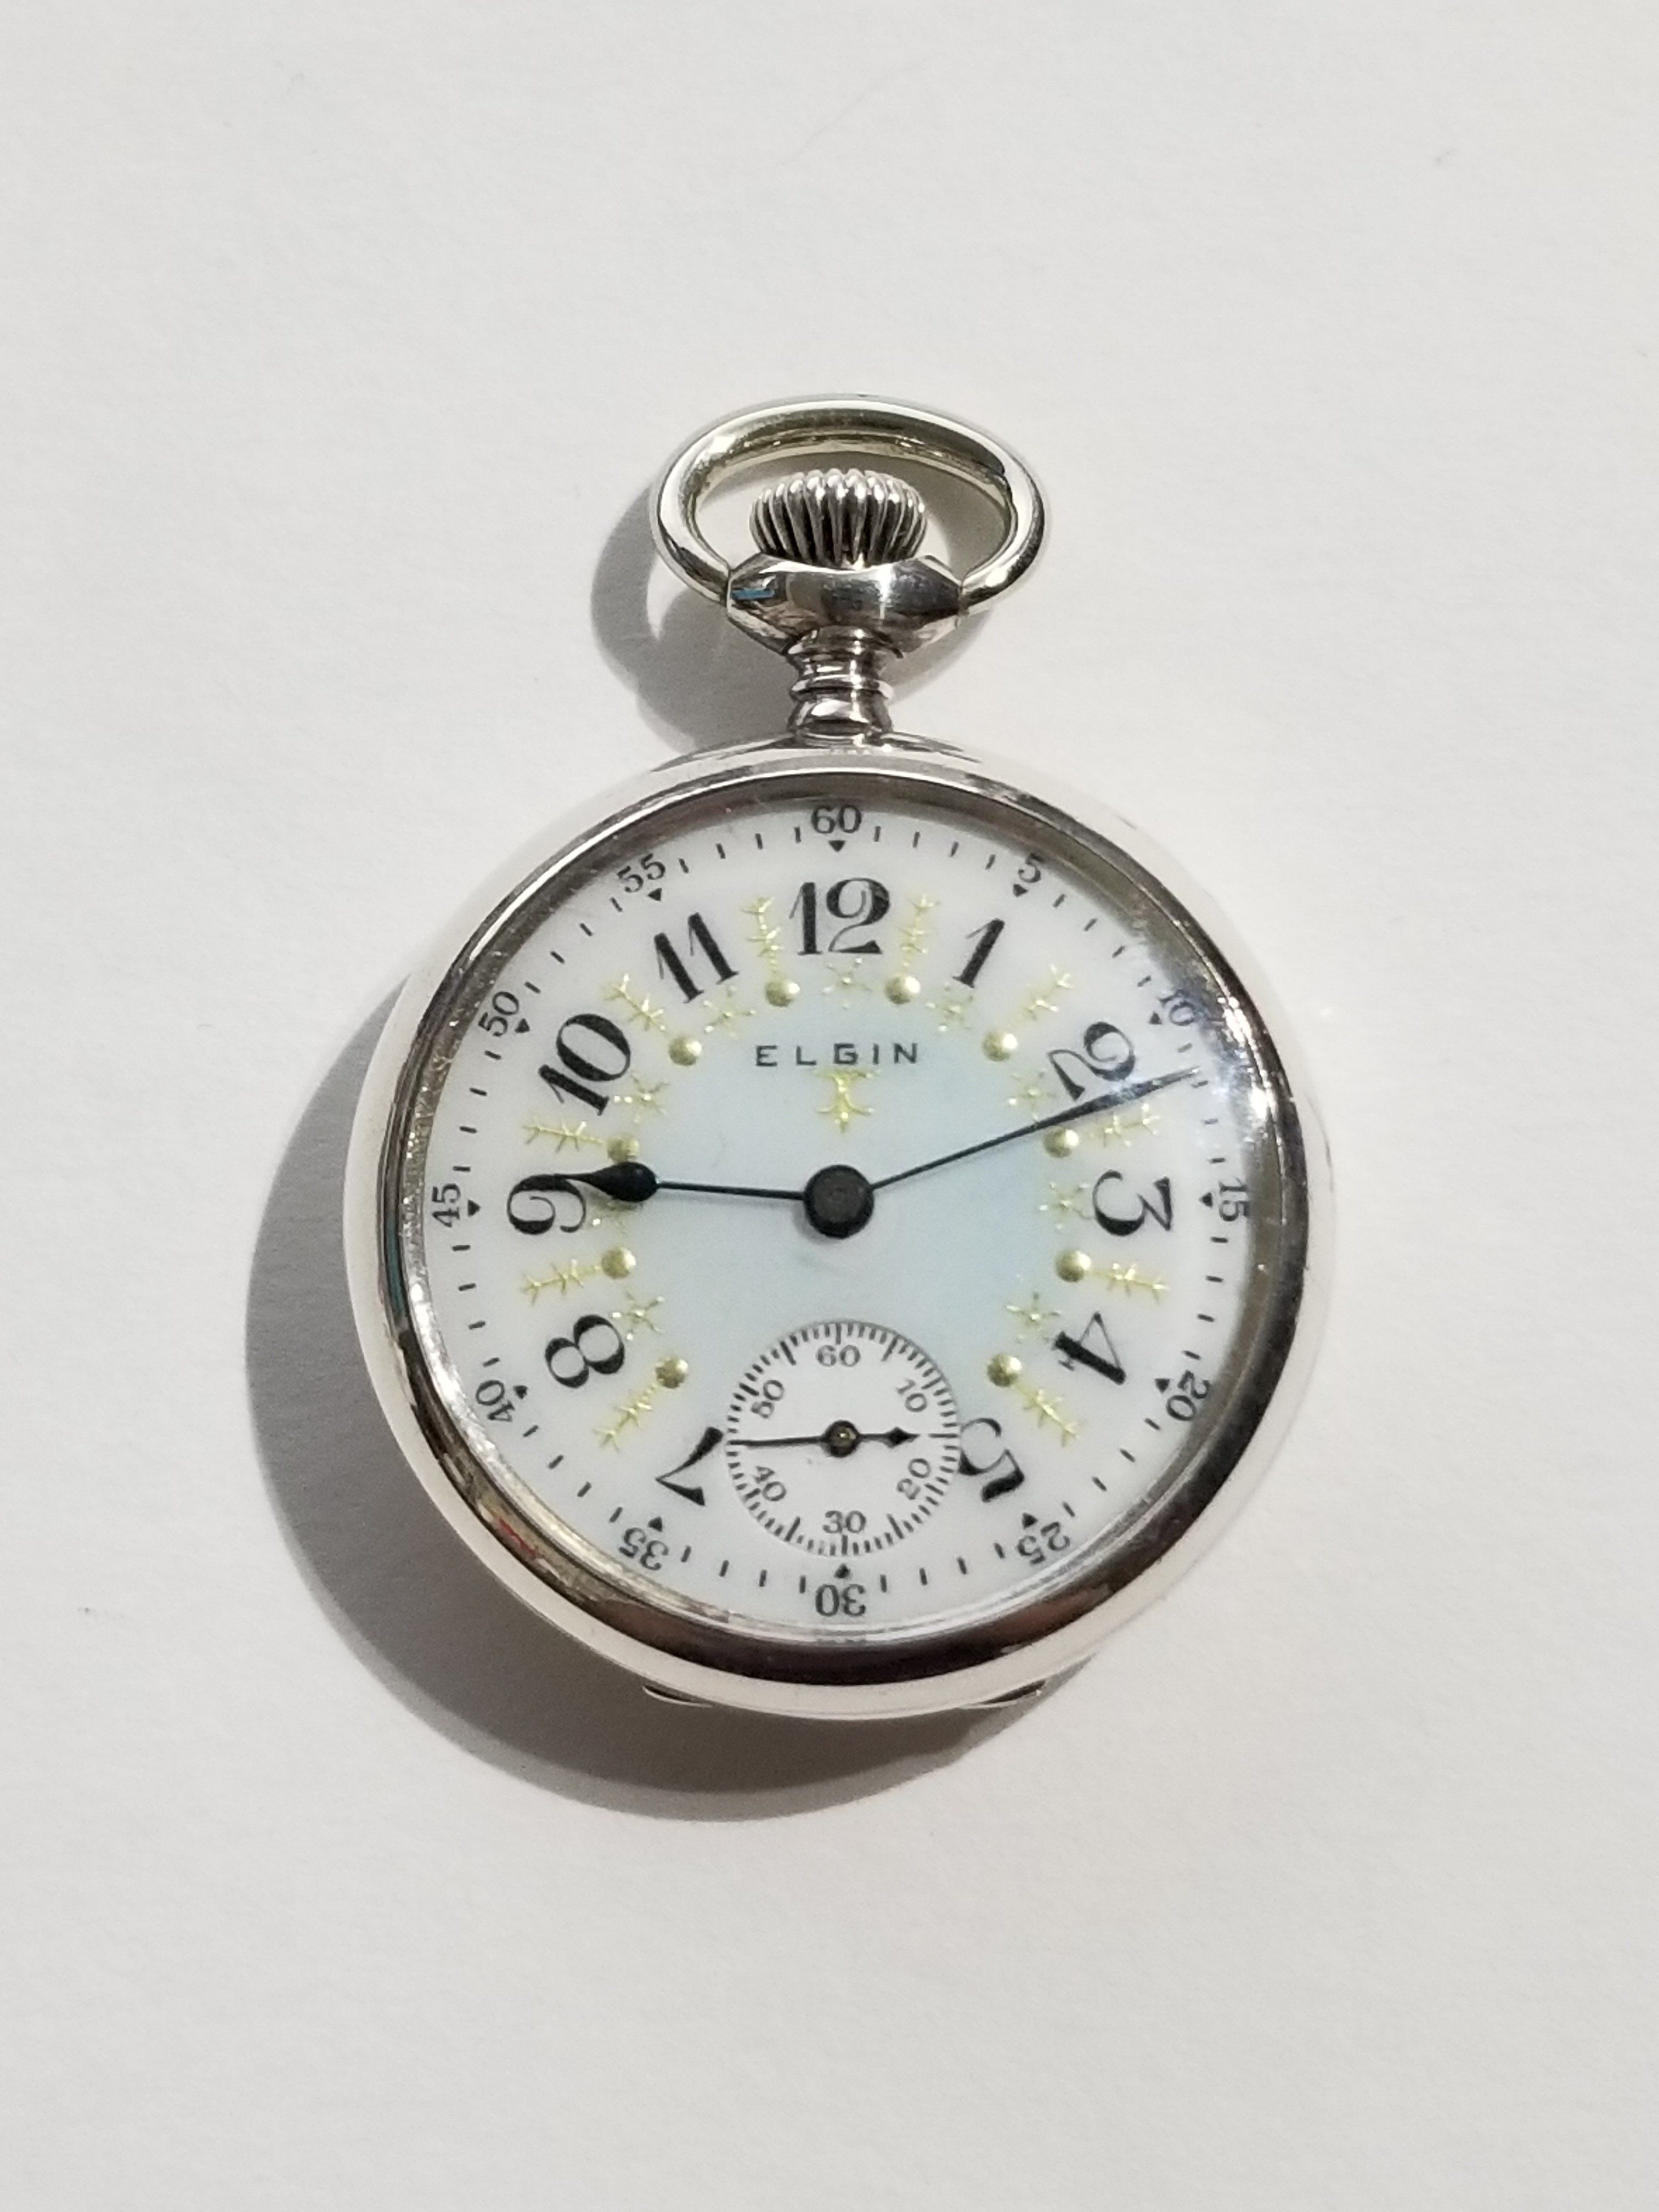 1f9296adf 1916 Antique Pocket Watch Elgin 7 Jewels 3/0 Size Fancy Dial Sterling  Silver Case